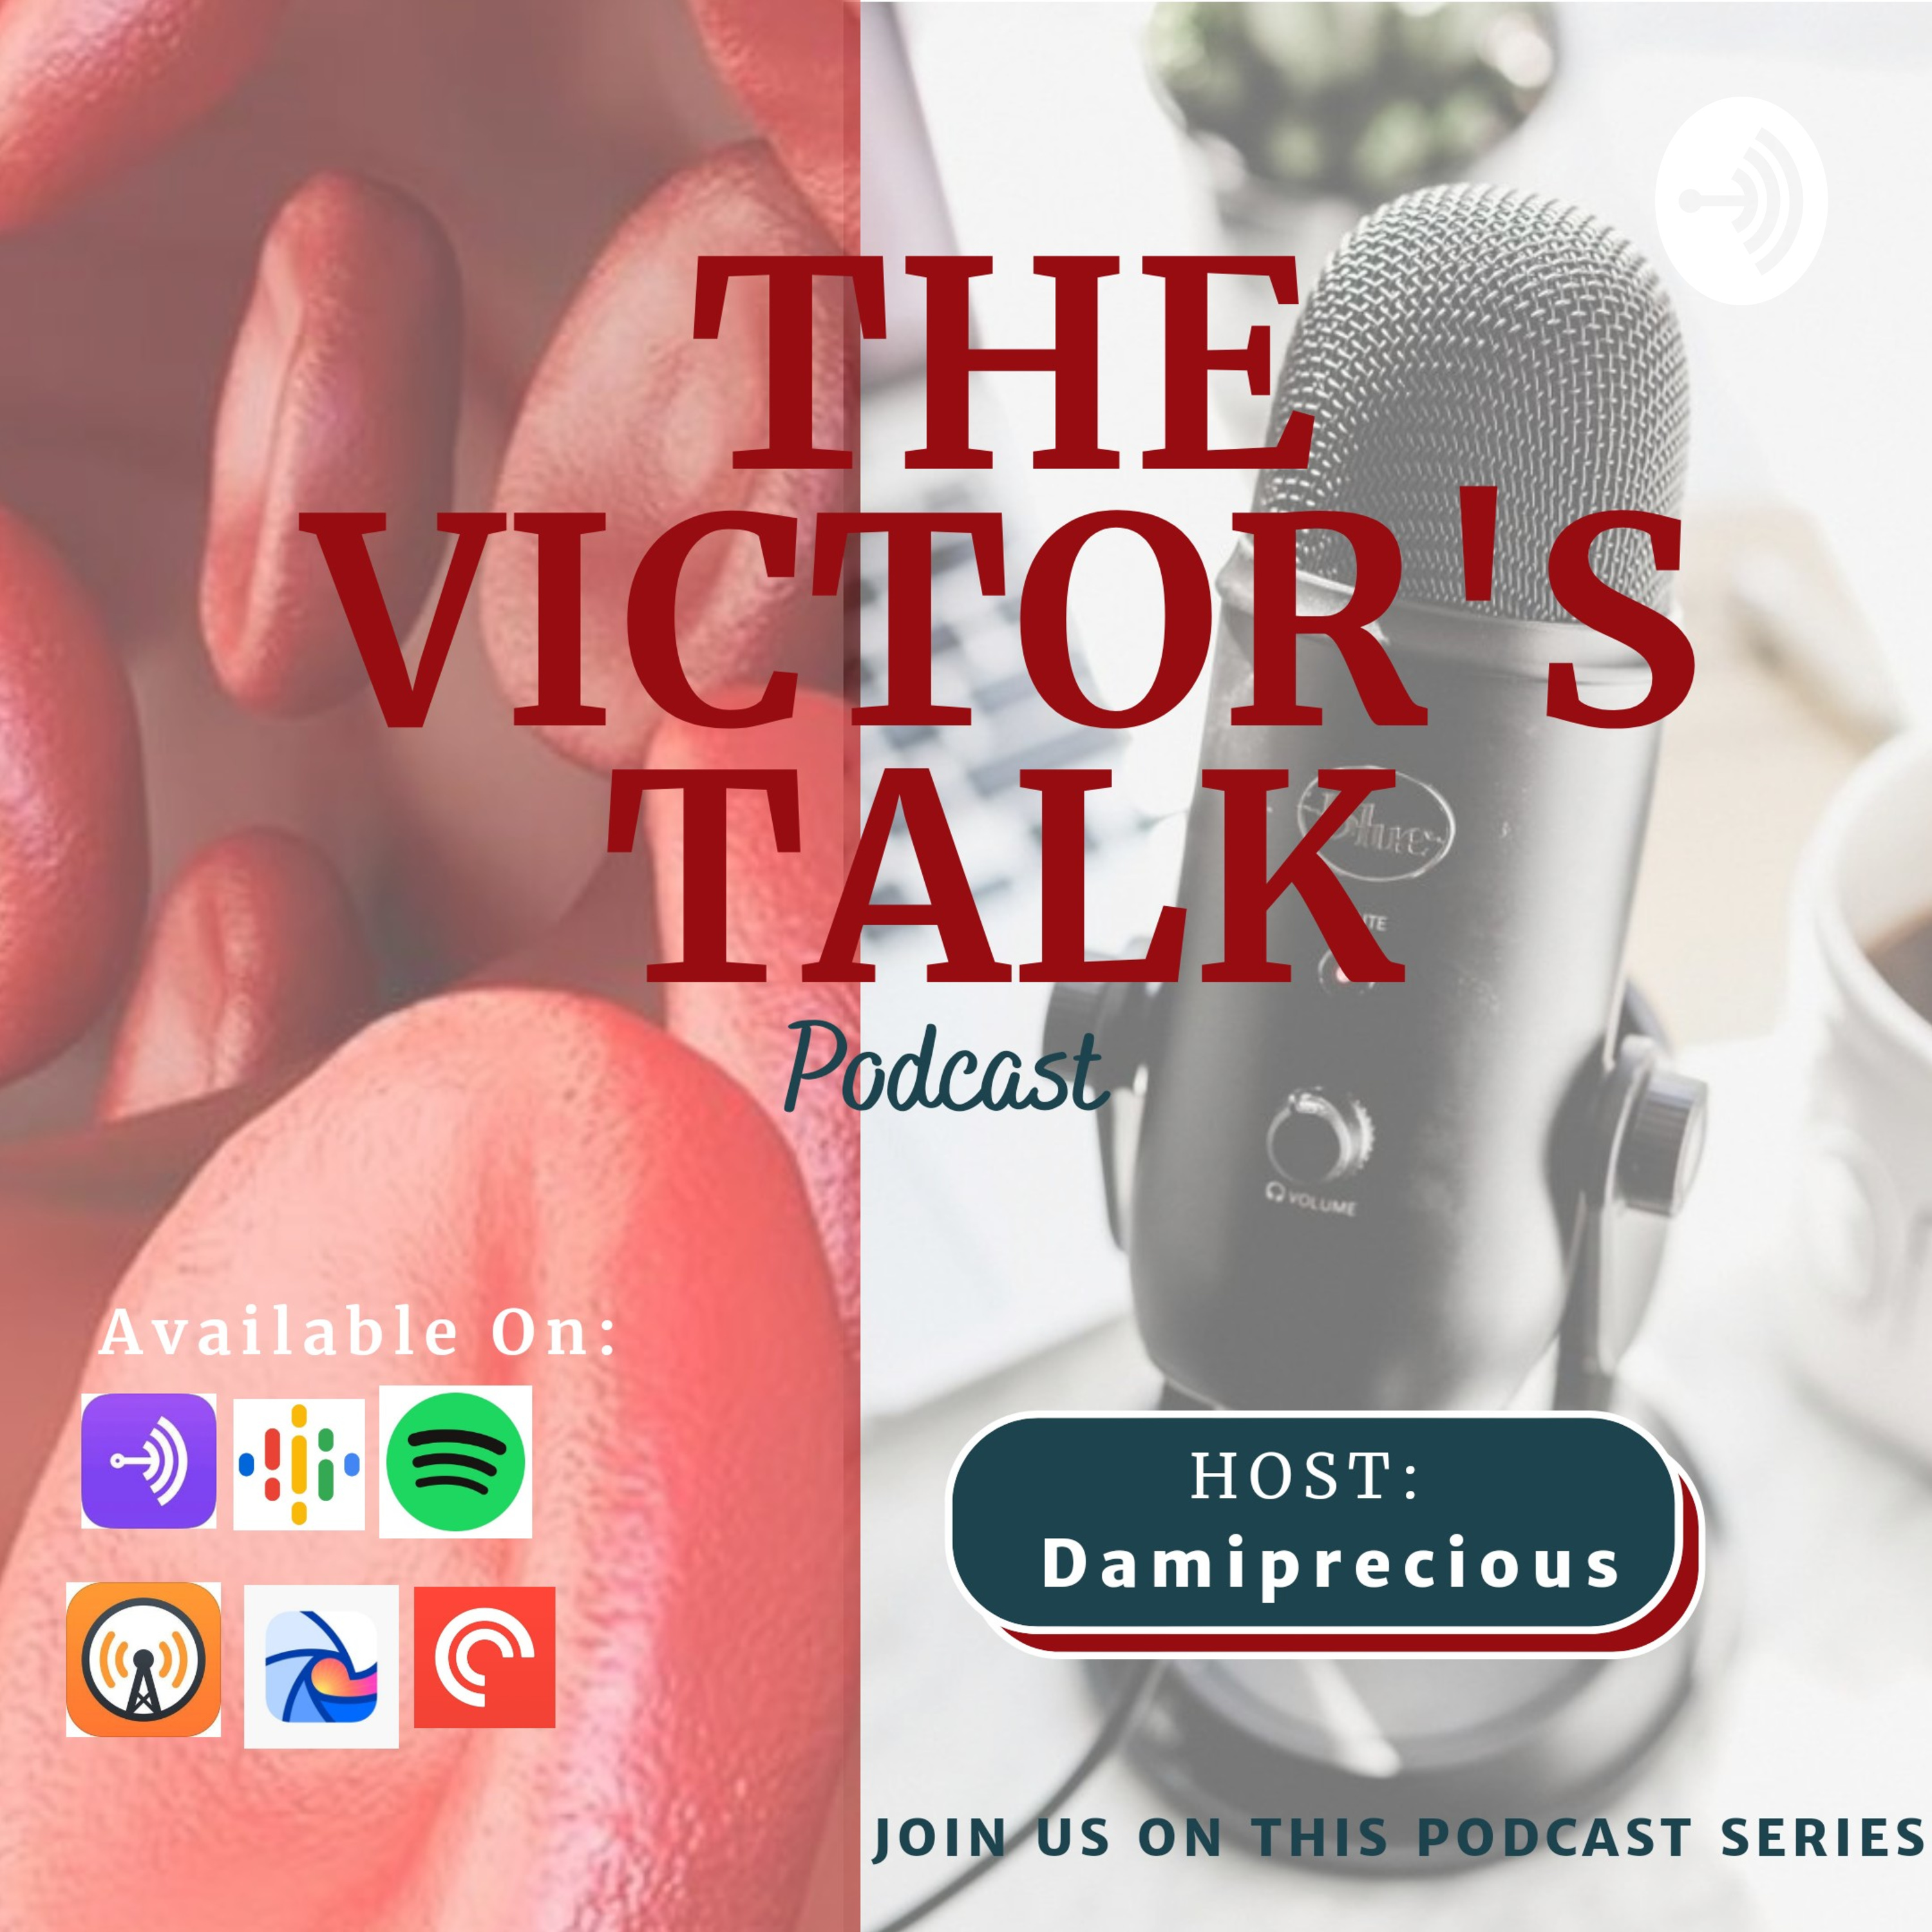 The Victor's Talk